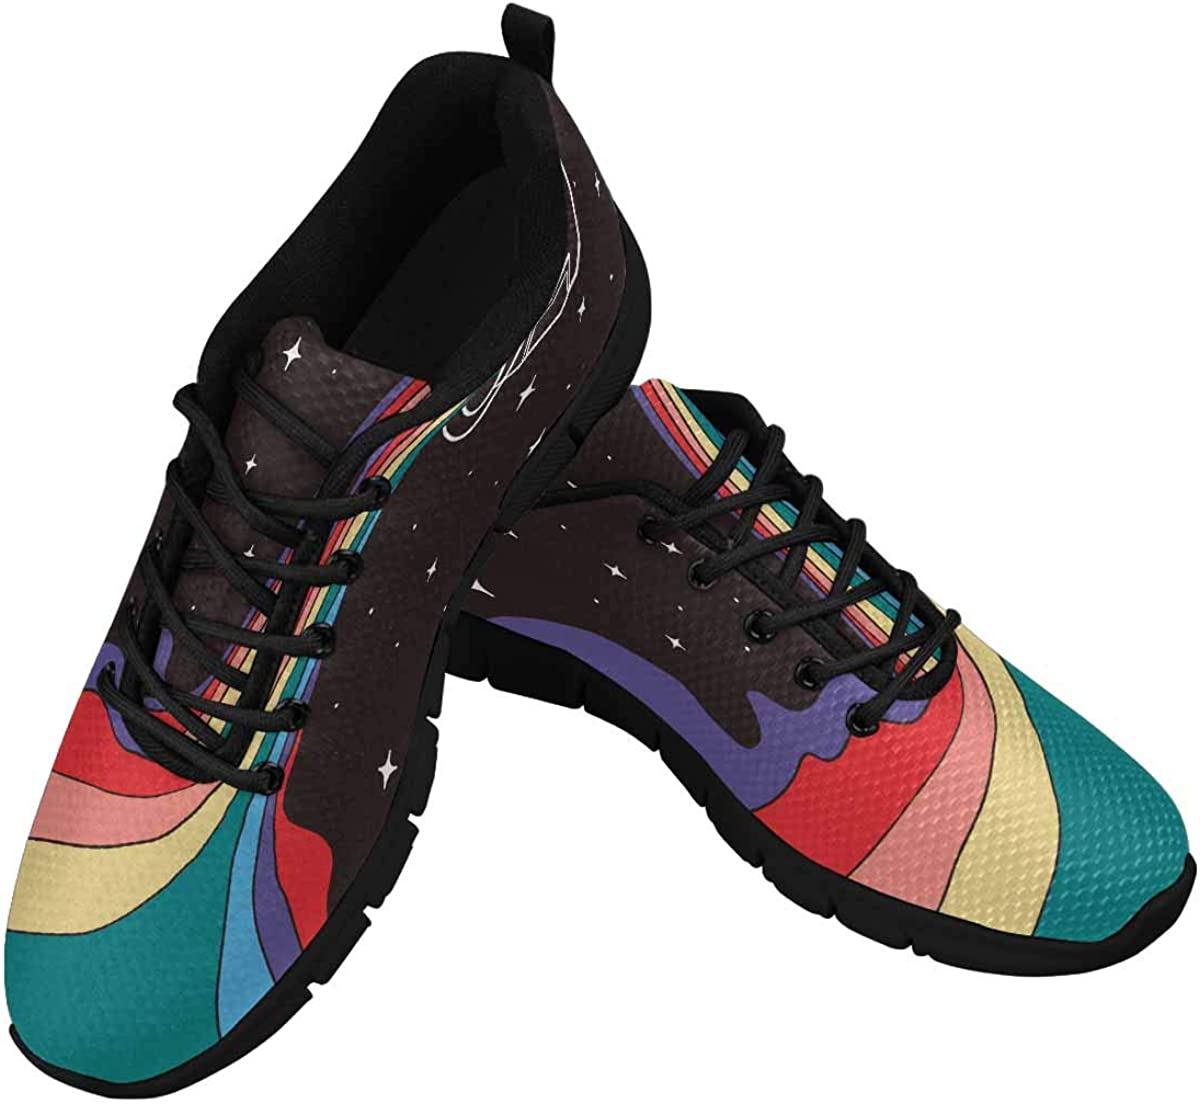 INTERESTPRINT Hand Drawn Colorful Can of Paint Women's Walking Shoes Lightweight Casual Running Sneakers